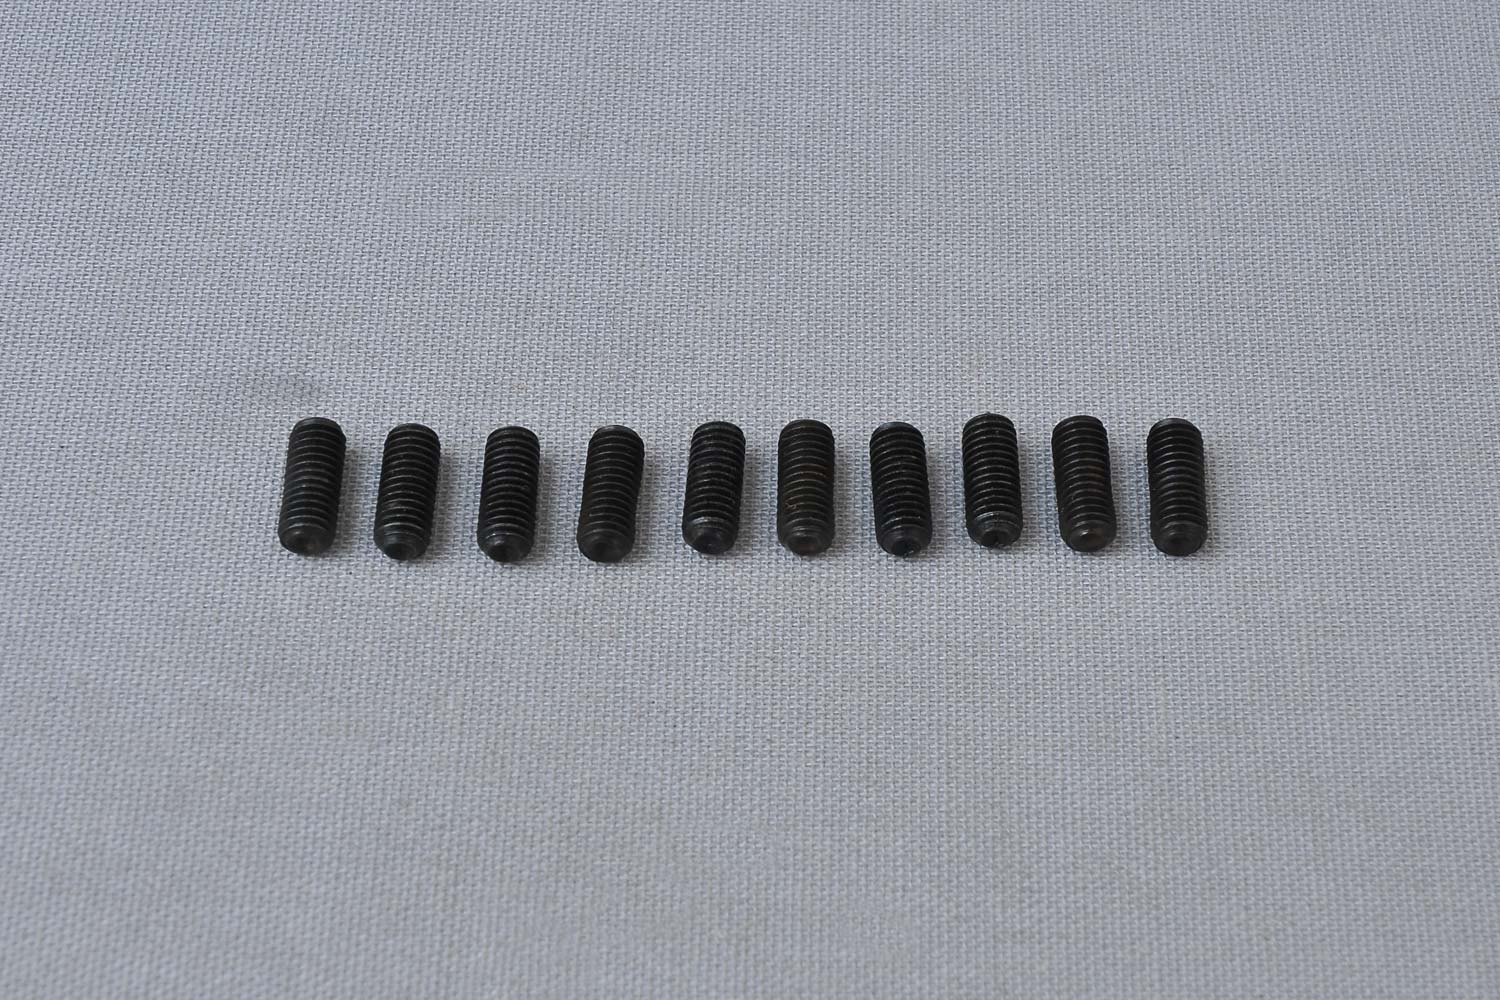 MCD Racing Set Screw M5x12 mm. 10pcs